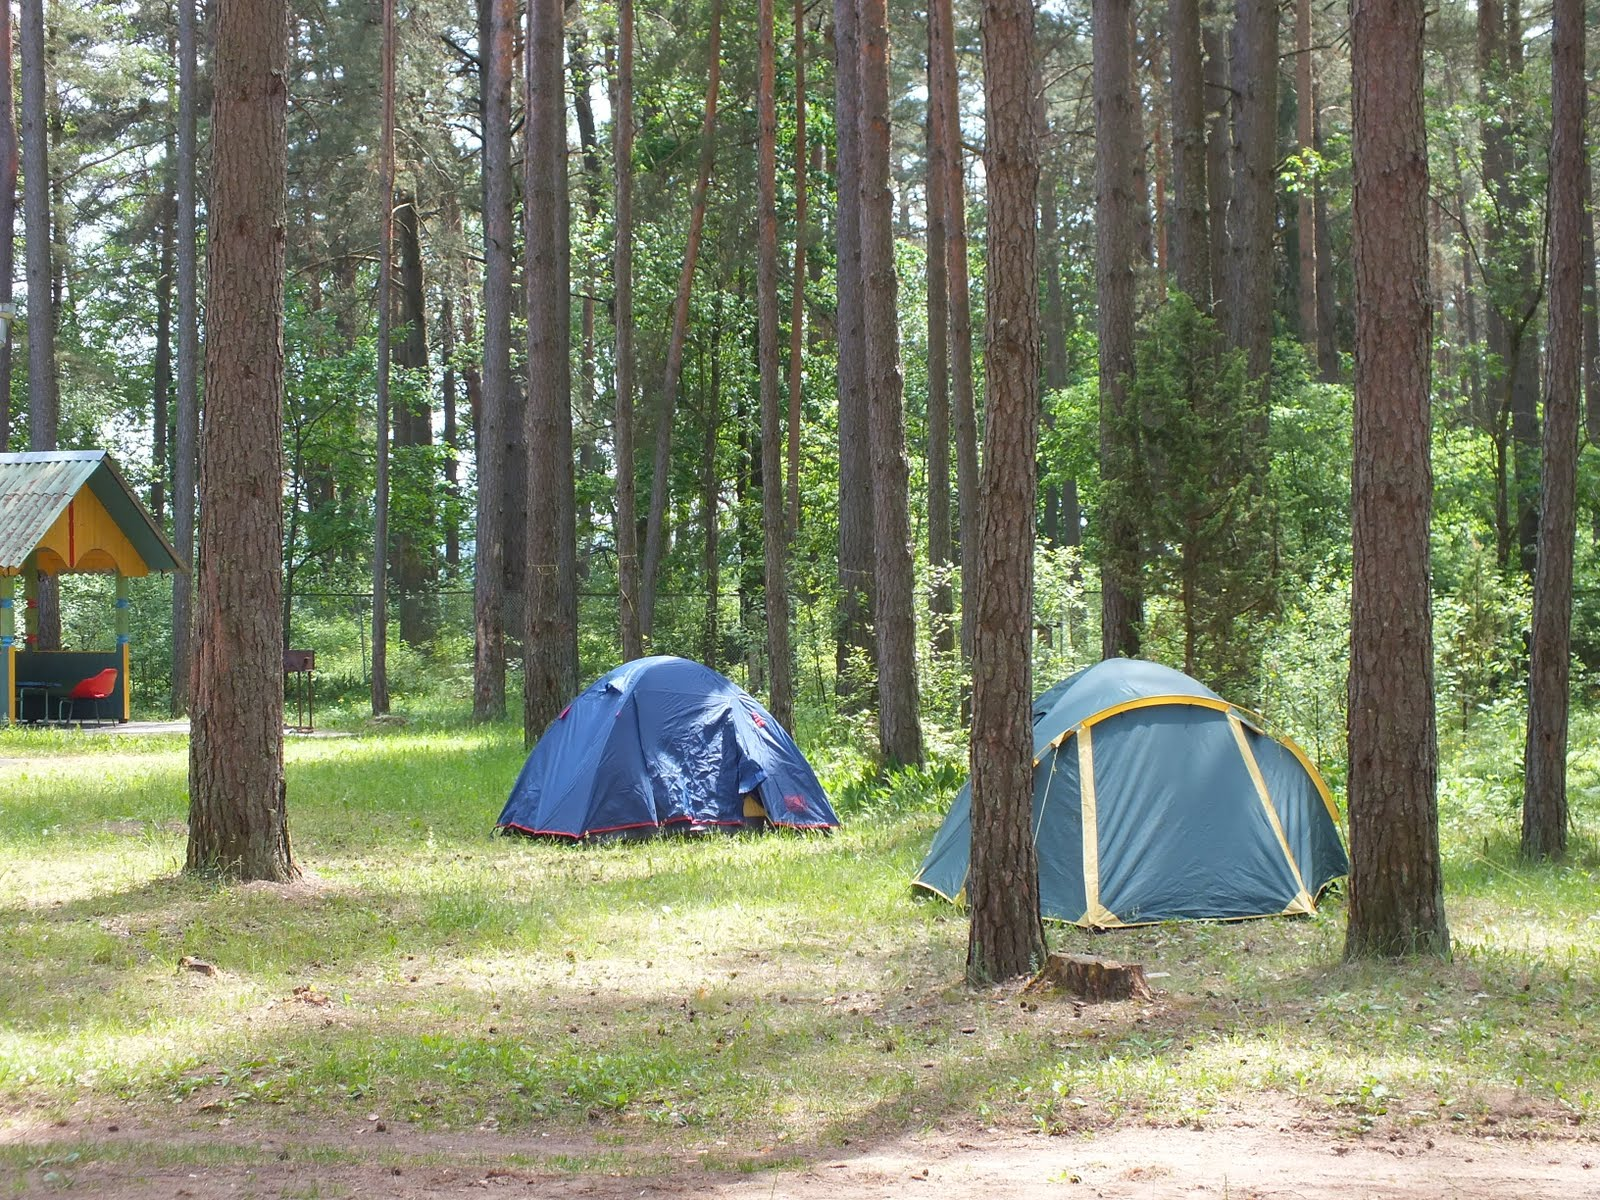 Tents of some of the participants